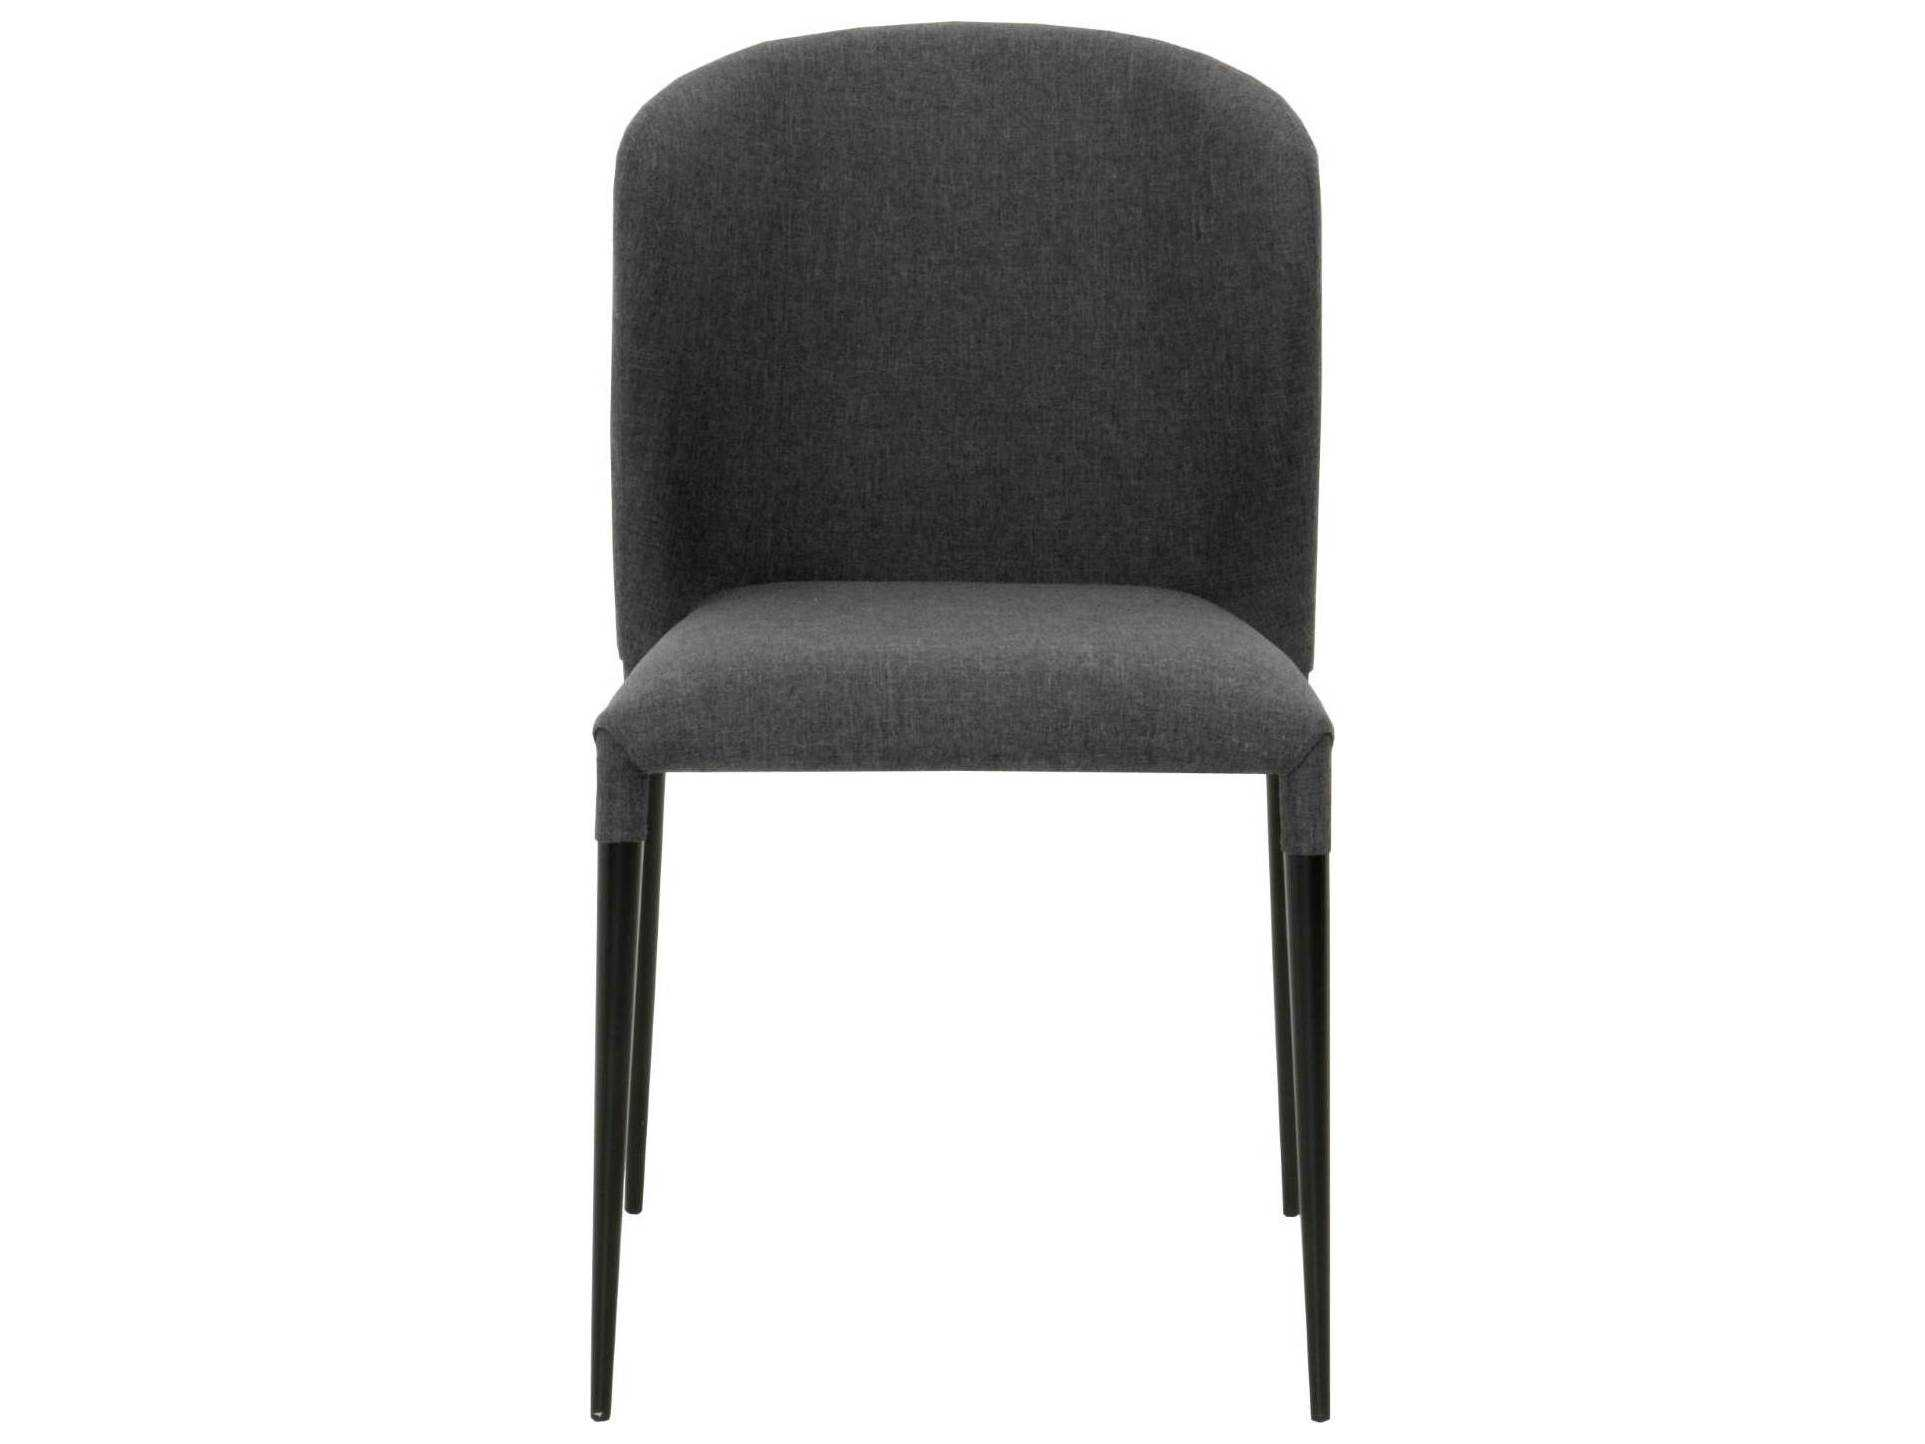 Star International Furniture Meridian Dason Matte Black Charcoal Fabric Metal